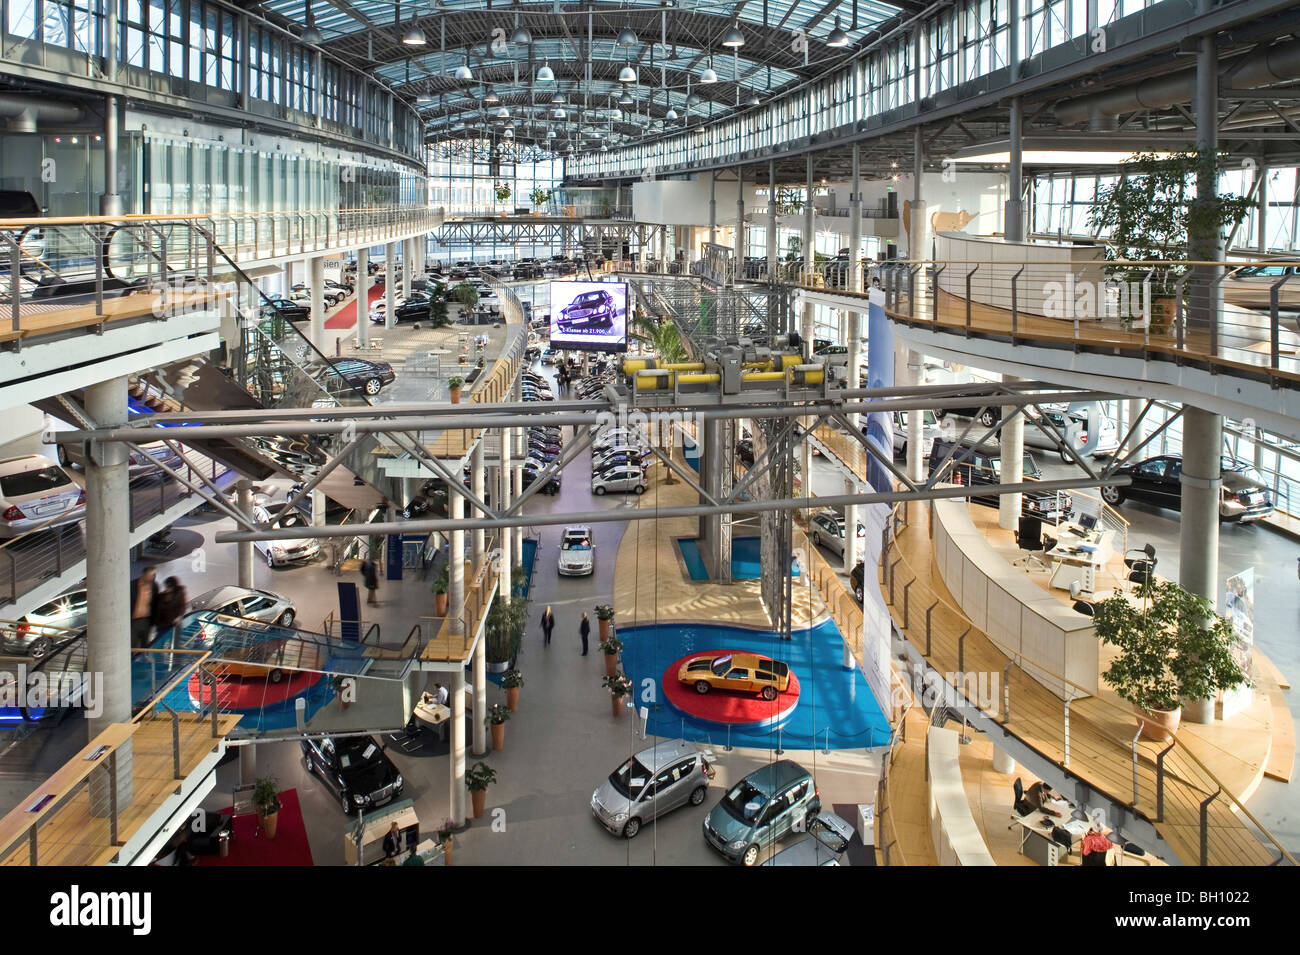 Interior view of the Mercedes Welt, showroom for Mercedes Benz, Salzufer, Berlin, Germany, Europe - Stock Image